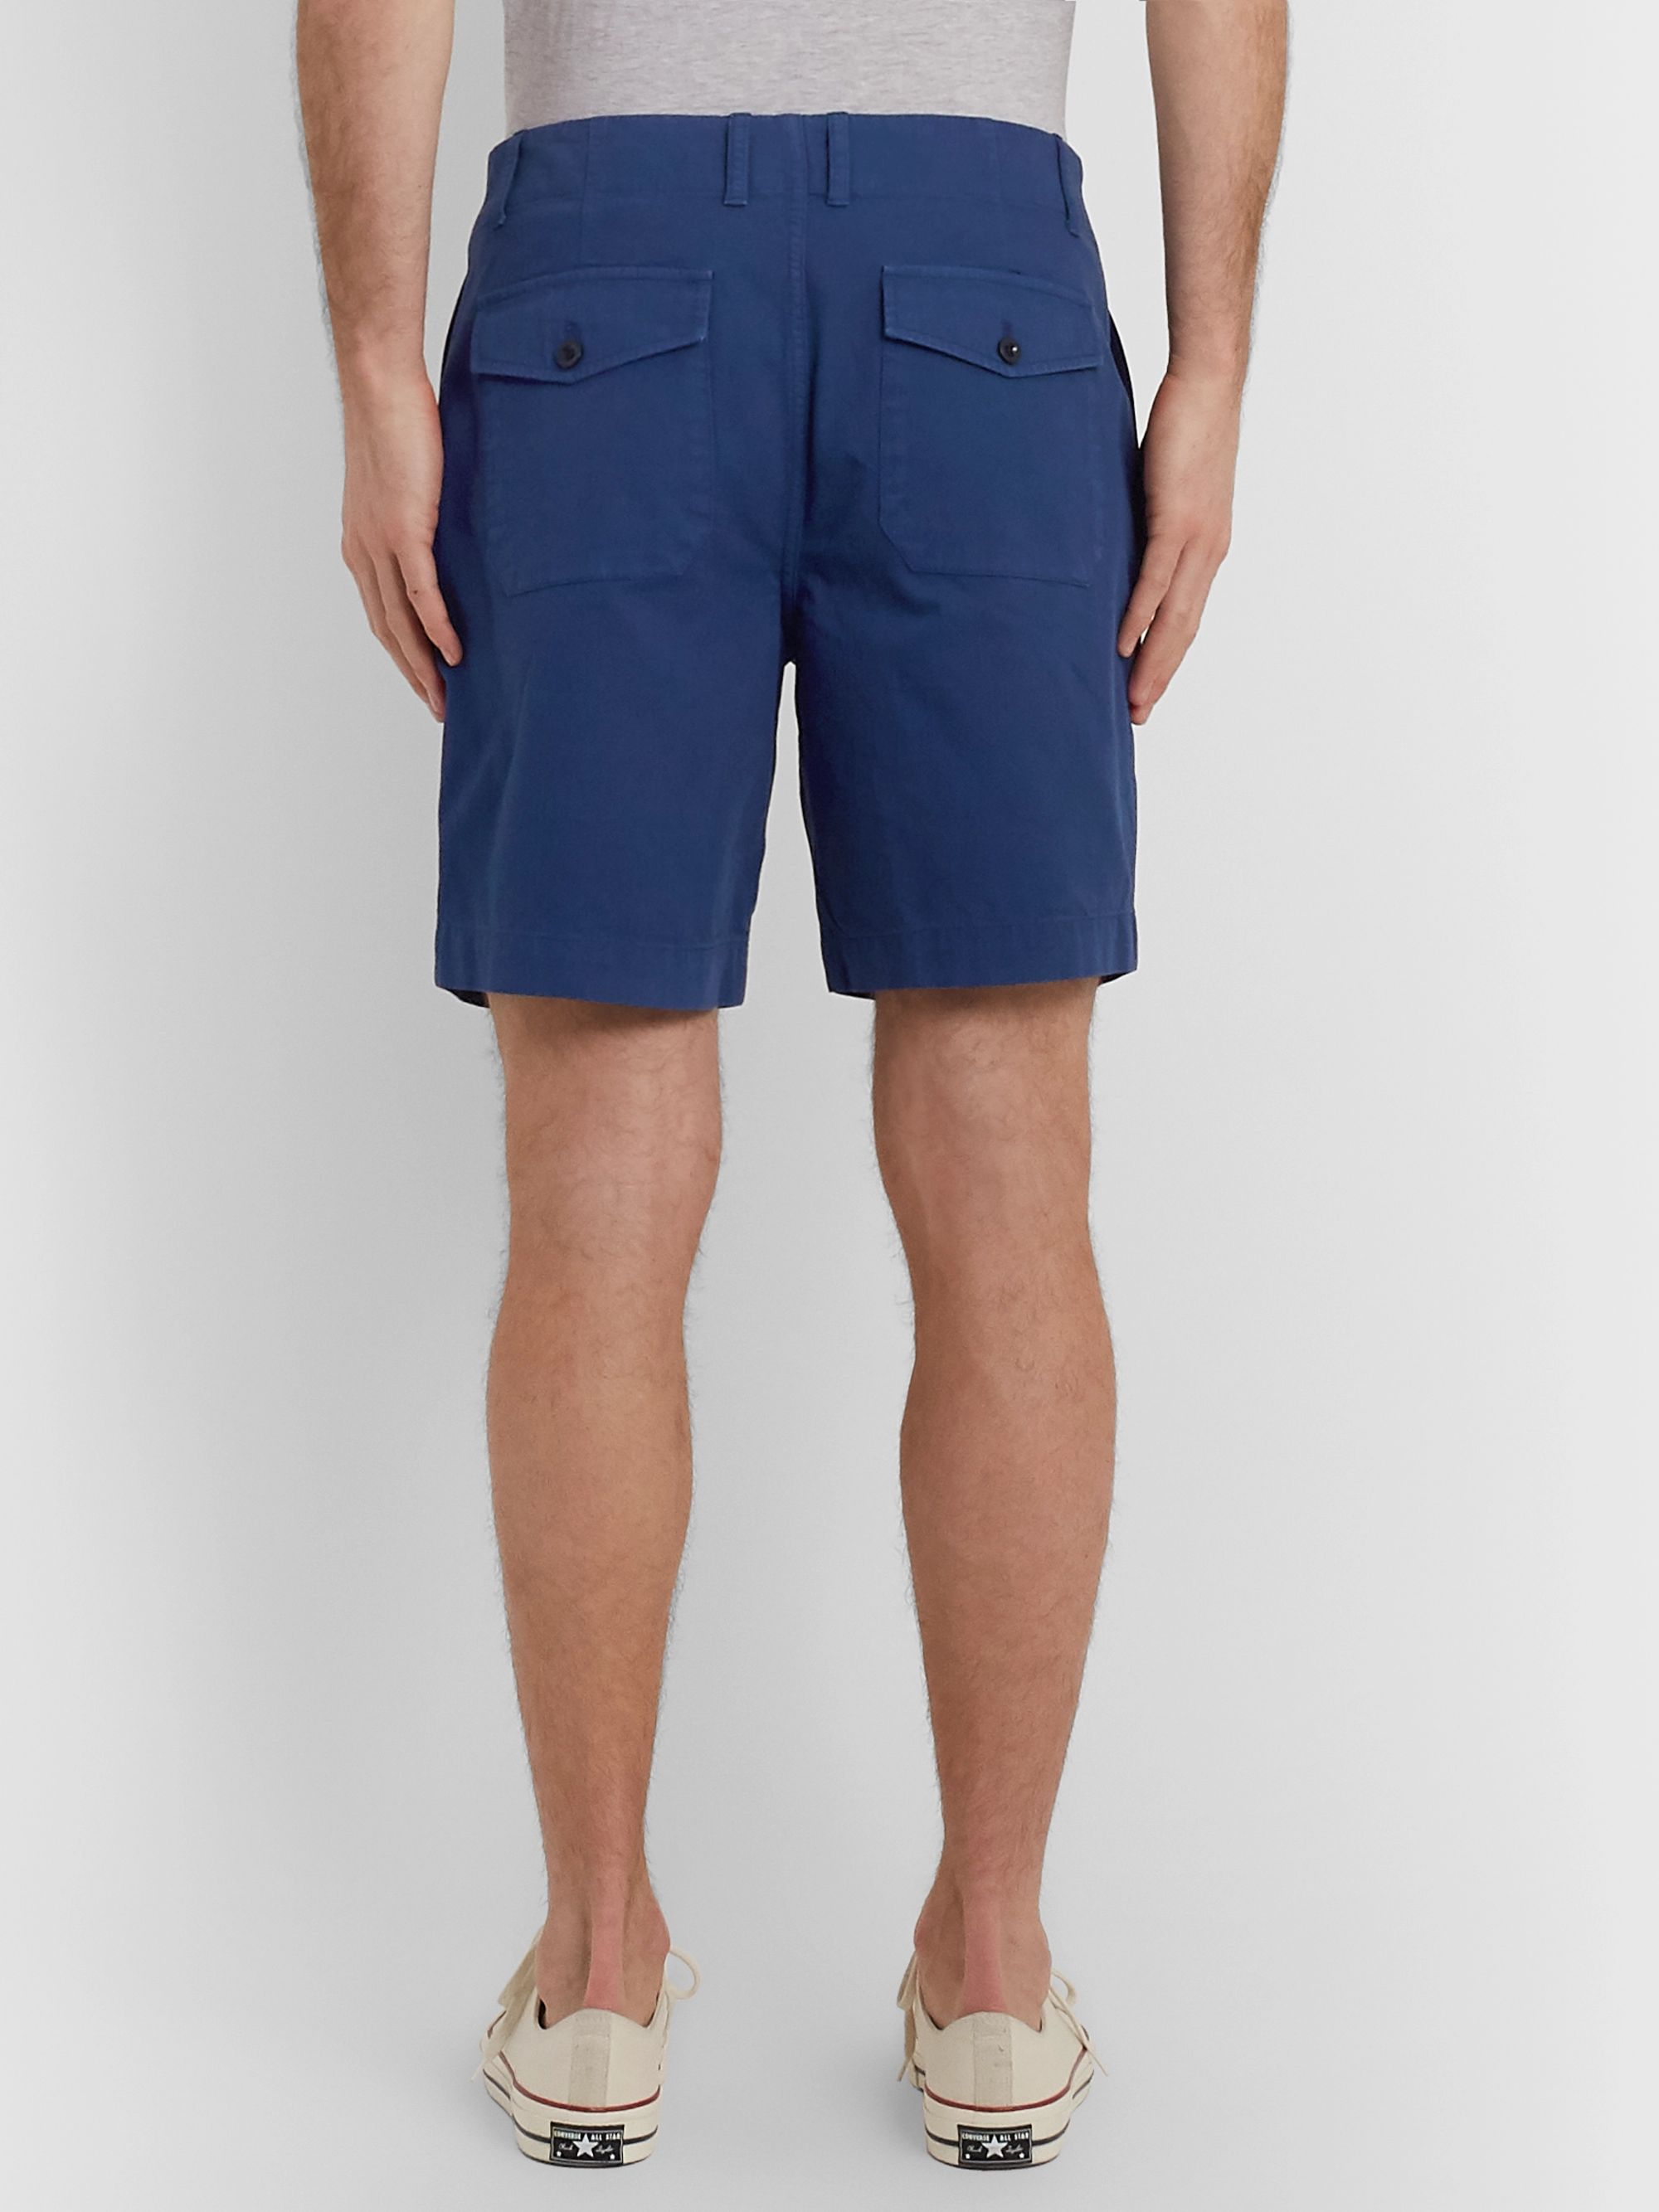 Mr P. Garment-Dyed Herringbone Cotton Shorts